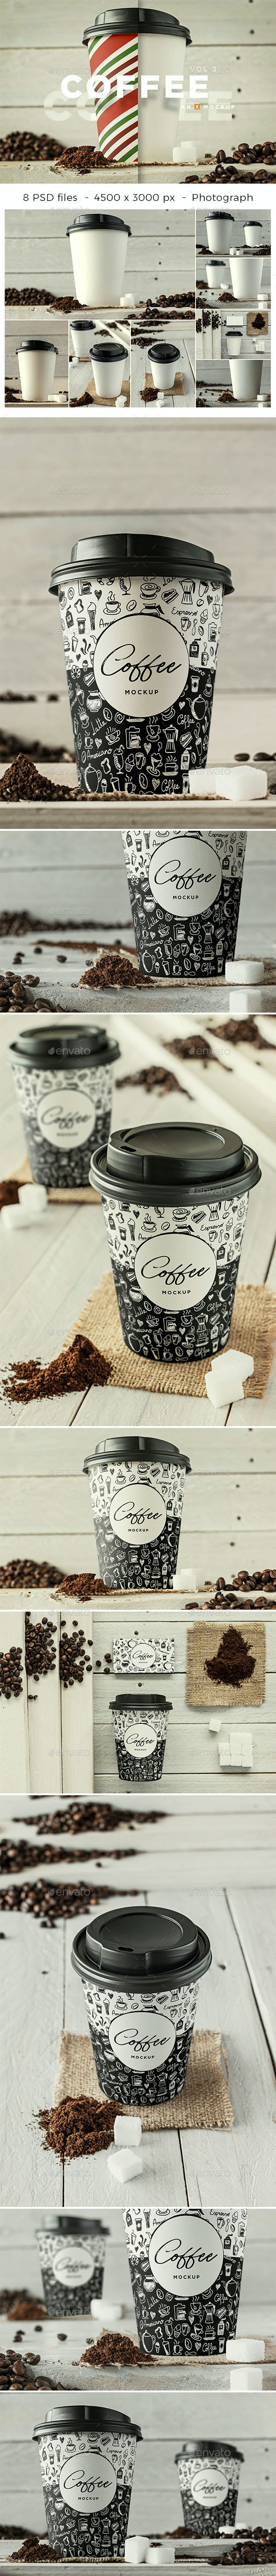 Coffee Branding Mockup - Vol 2. - Food and Drink Packaging